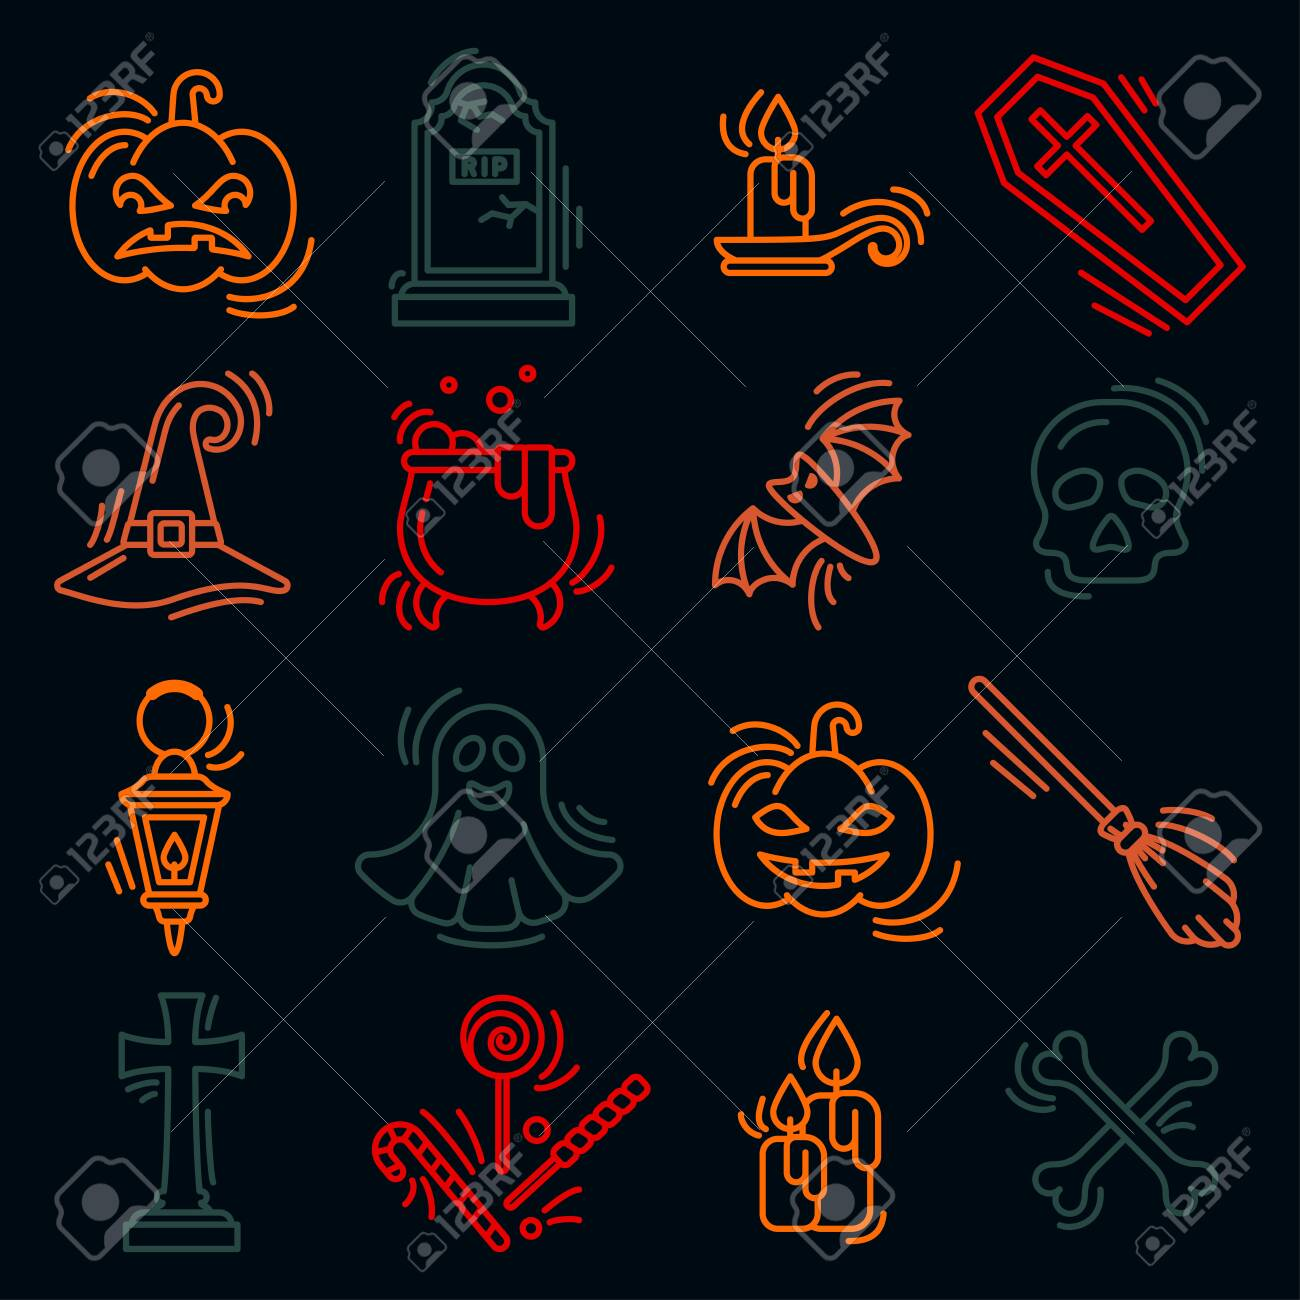 Halloween icons set in contour style. Isolated on dark background - 130984734